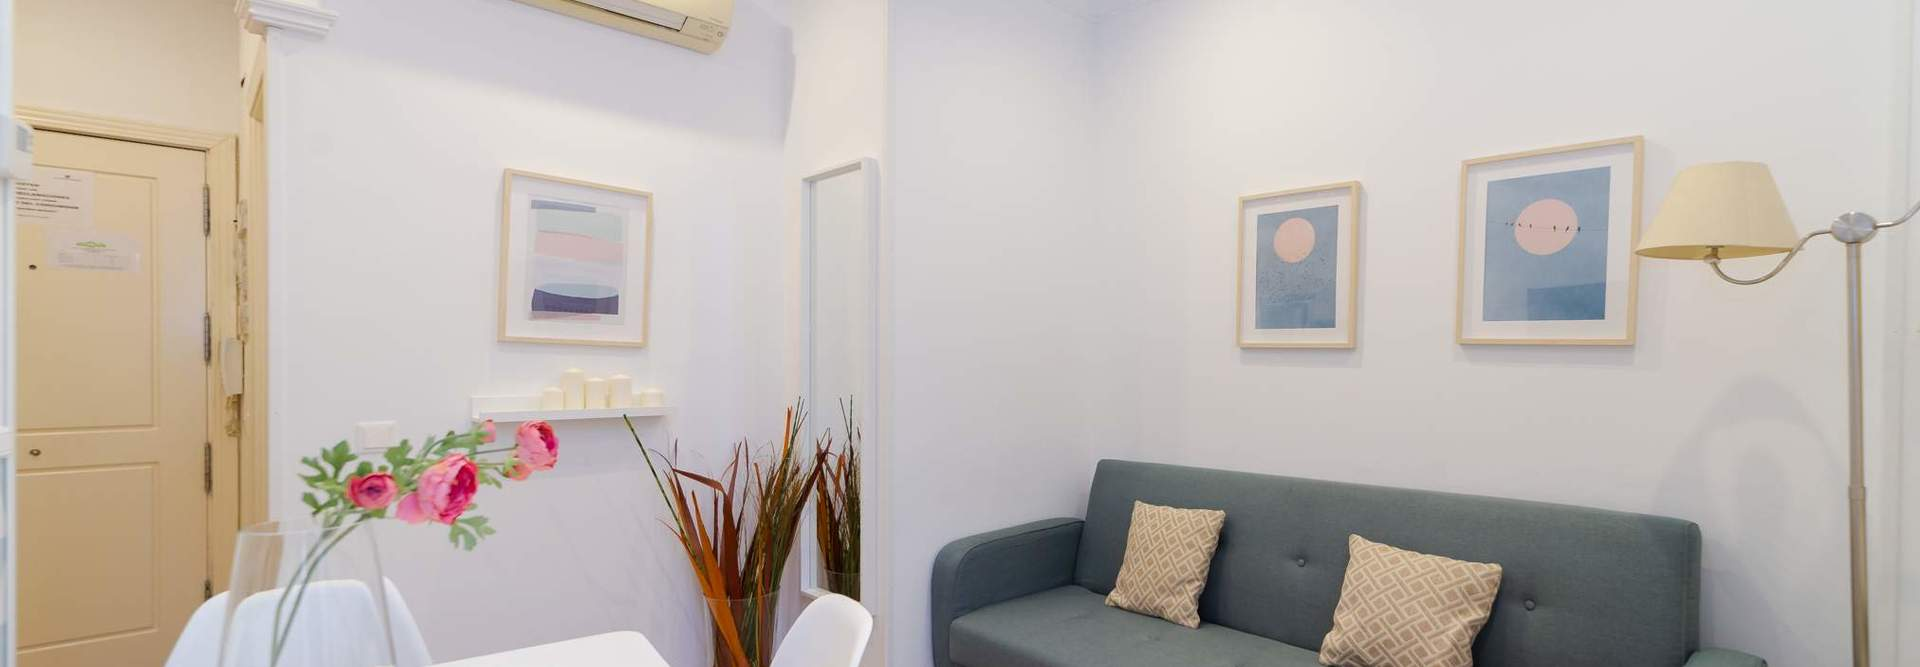 Home alquiler apartamentos madrid mad4rent 25